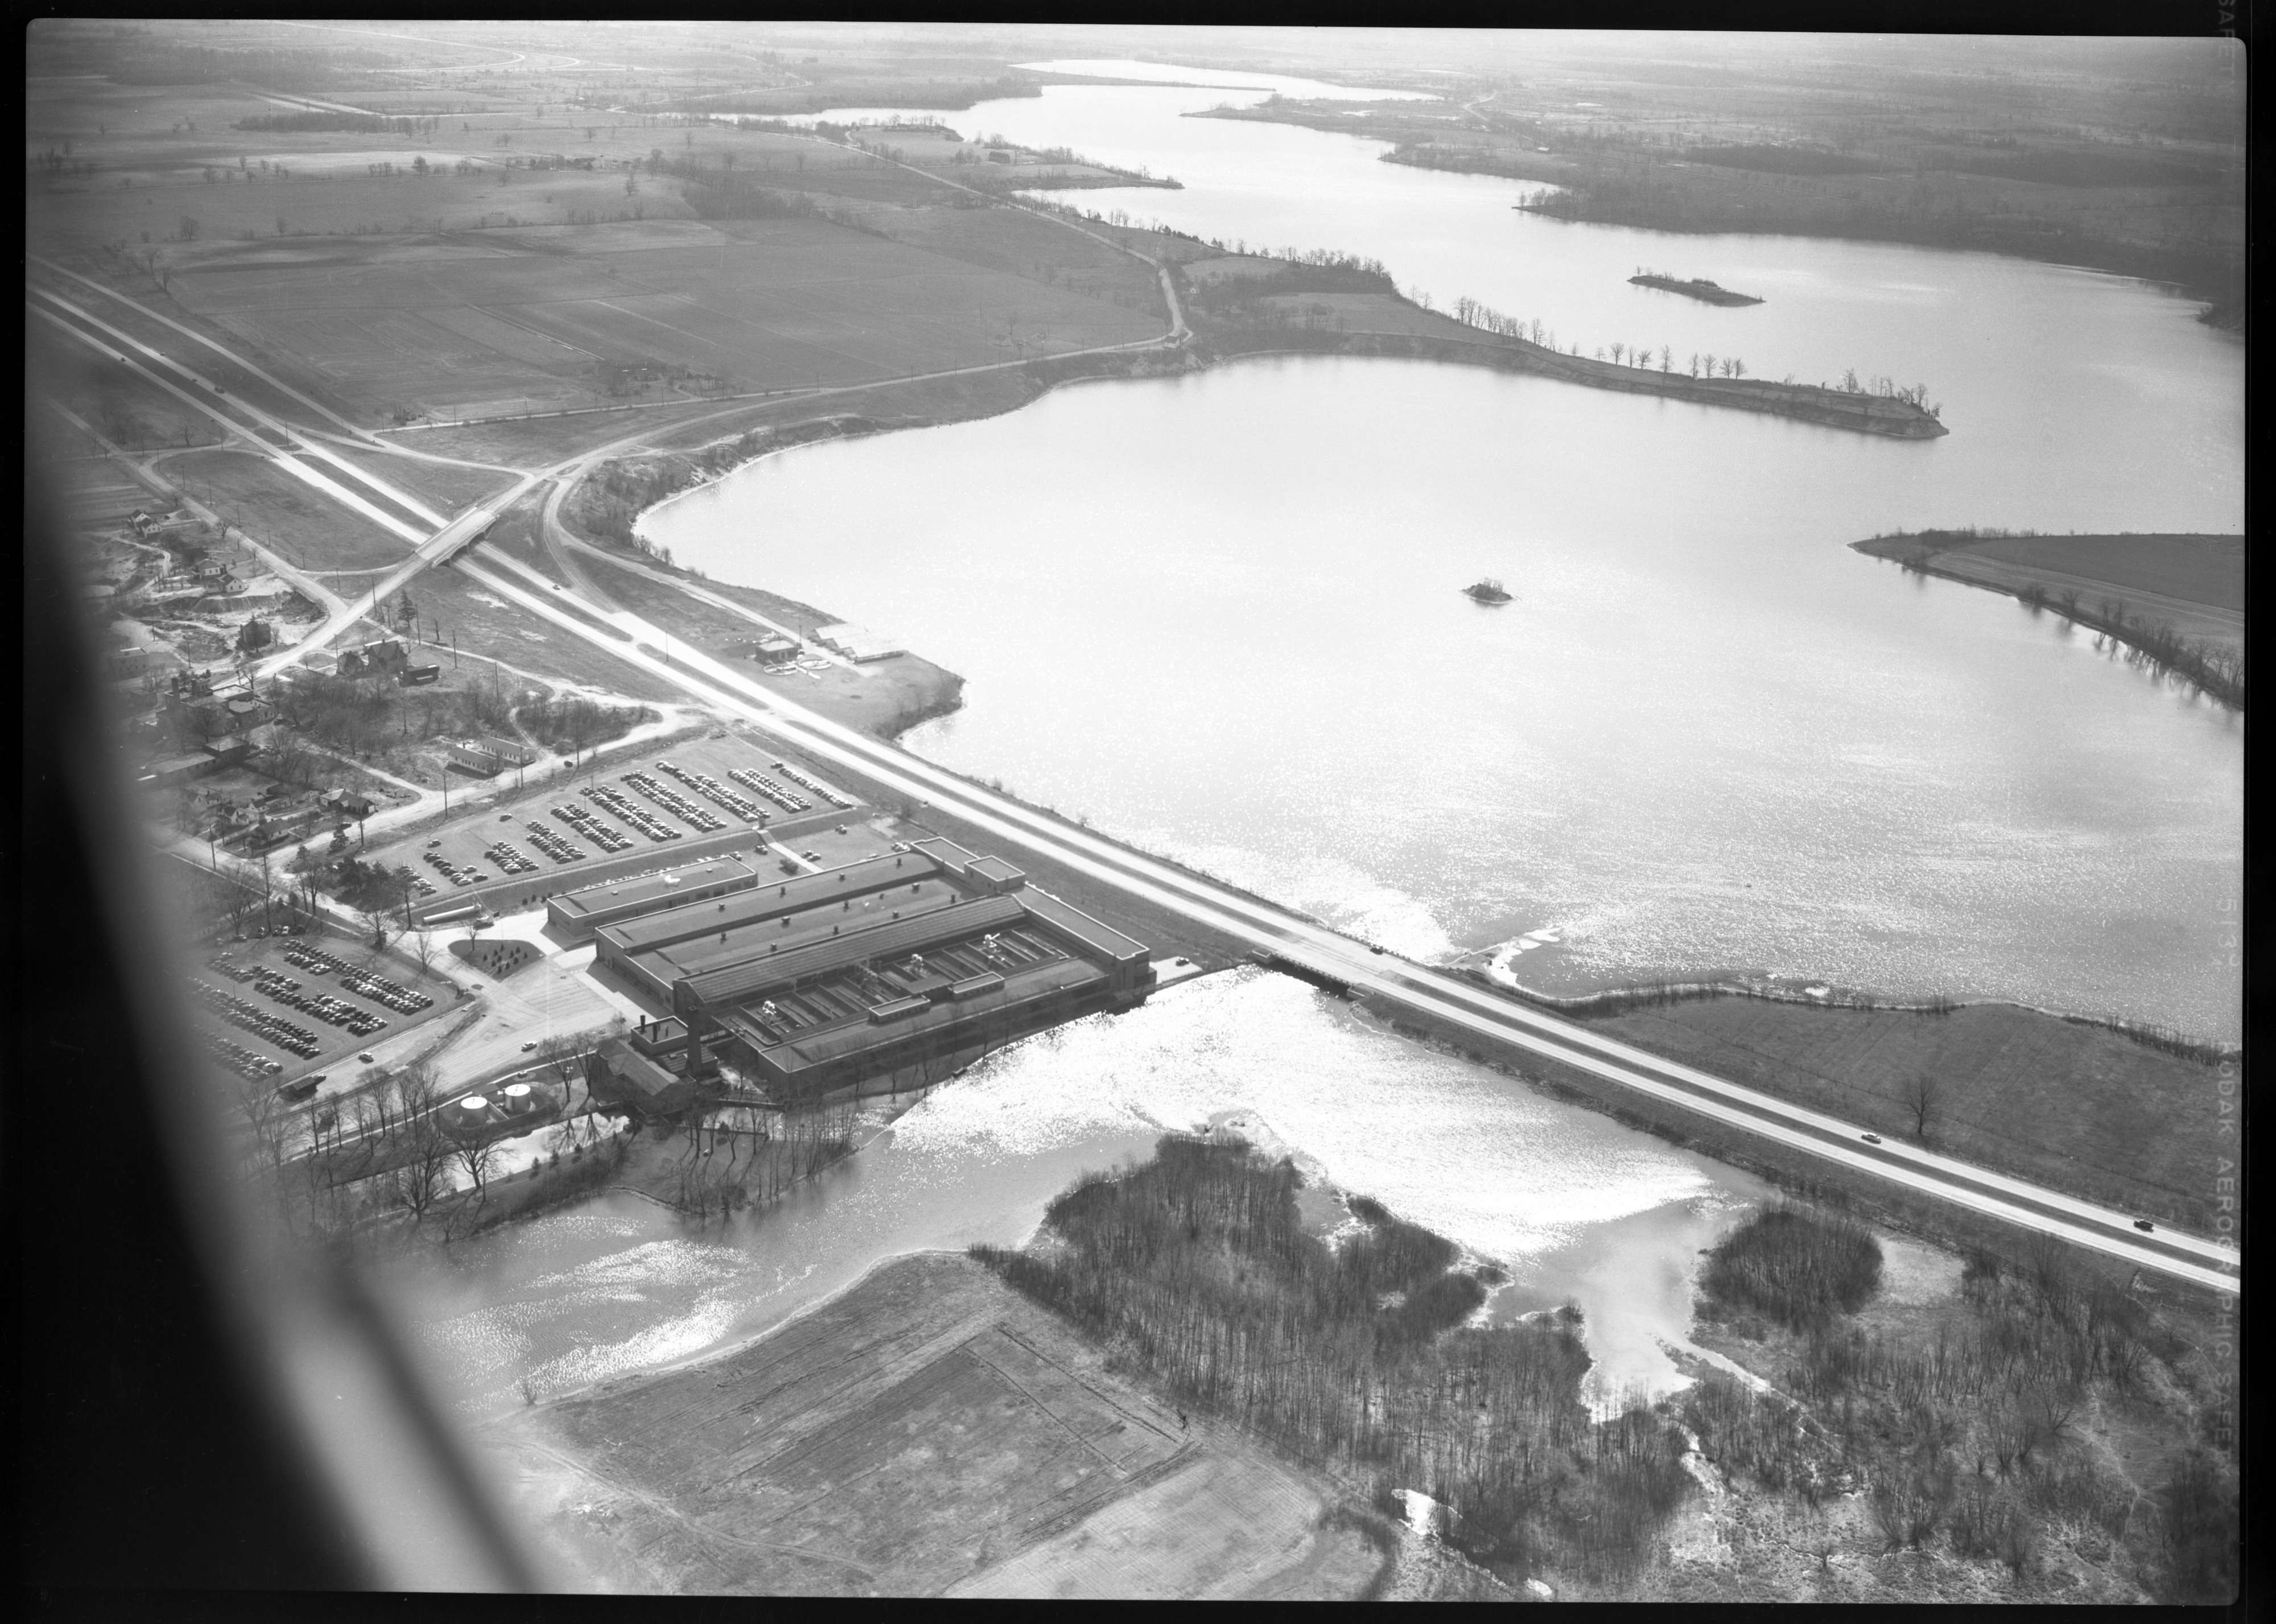 Aerial Photograph of Ford Motor Co. Plant, Ypsilanti, Circa 1953 image